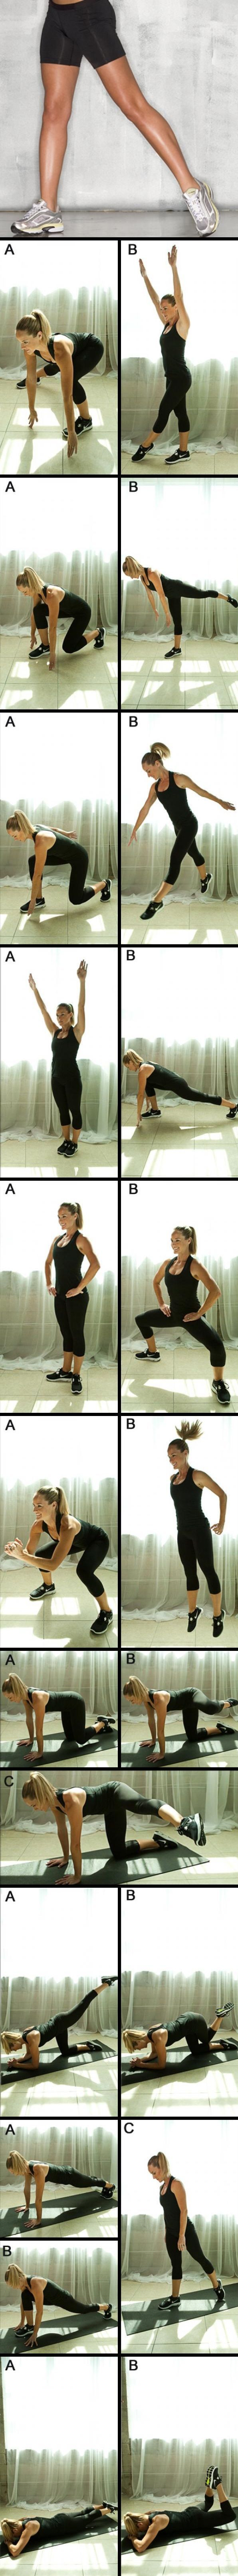 Top 10 Moves 4 Thinner Thighs - For best results, perform 15 reps of each move, back to back without rest, up to four days a week. And be sure to couple your lower-body workouts with cardio exercise and a healthy diet to stay slim and trim for good. Want to boost your burn? Try adding a set of 5-10 pound dumbbells to some of the strength moves for more of a challenge.